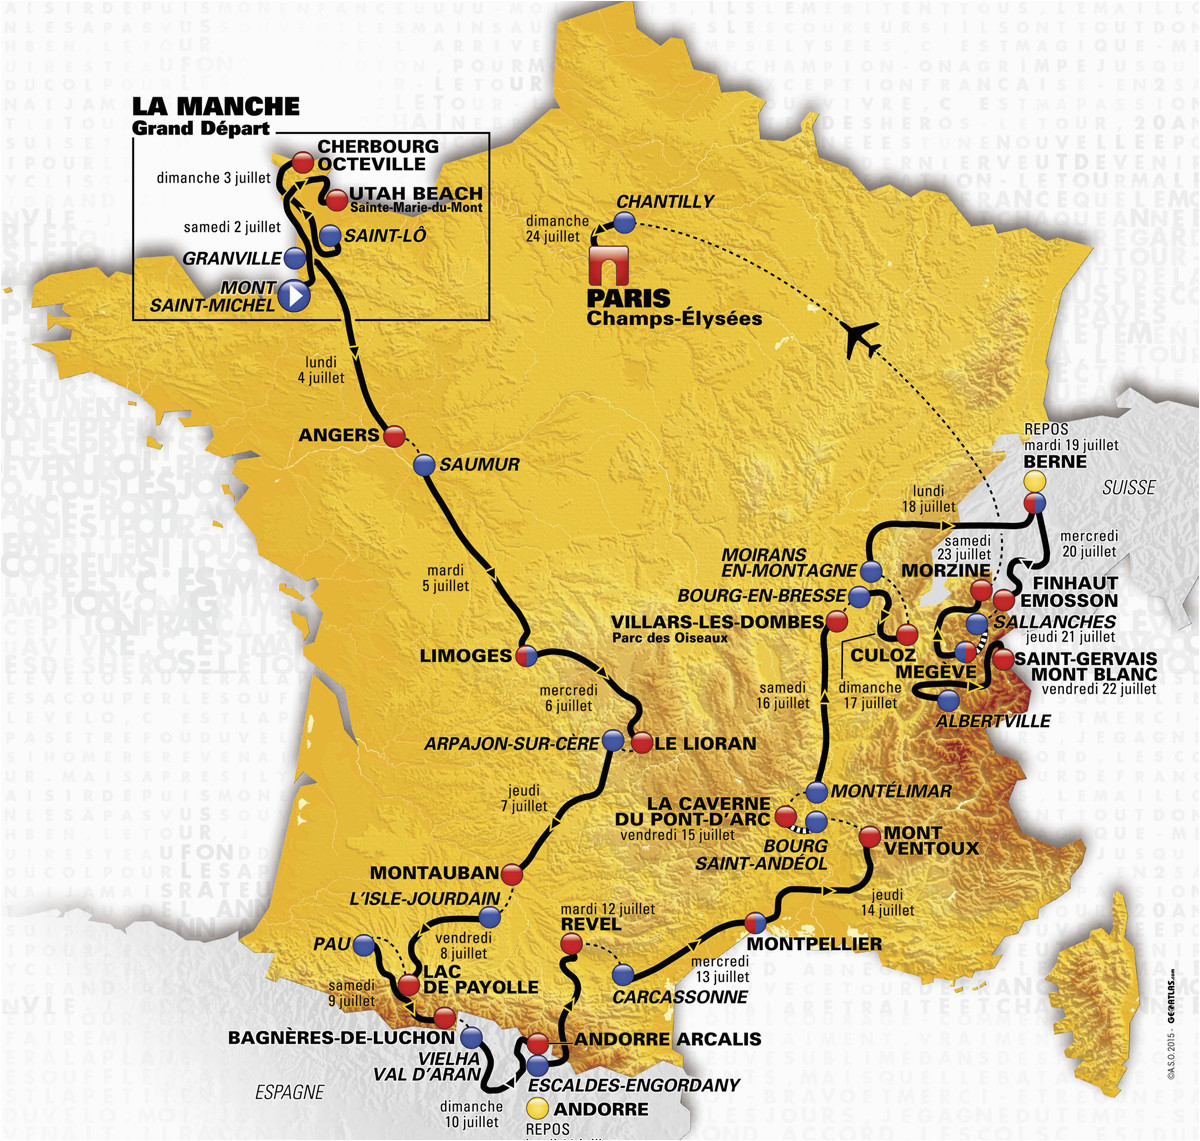 Tour De France 2014 Route Map tour De France 2016 Die Strecke